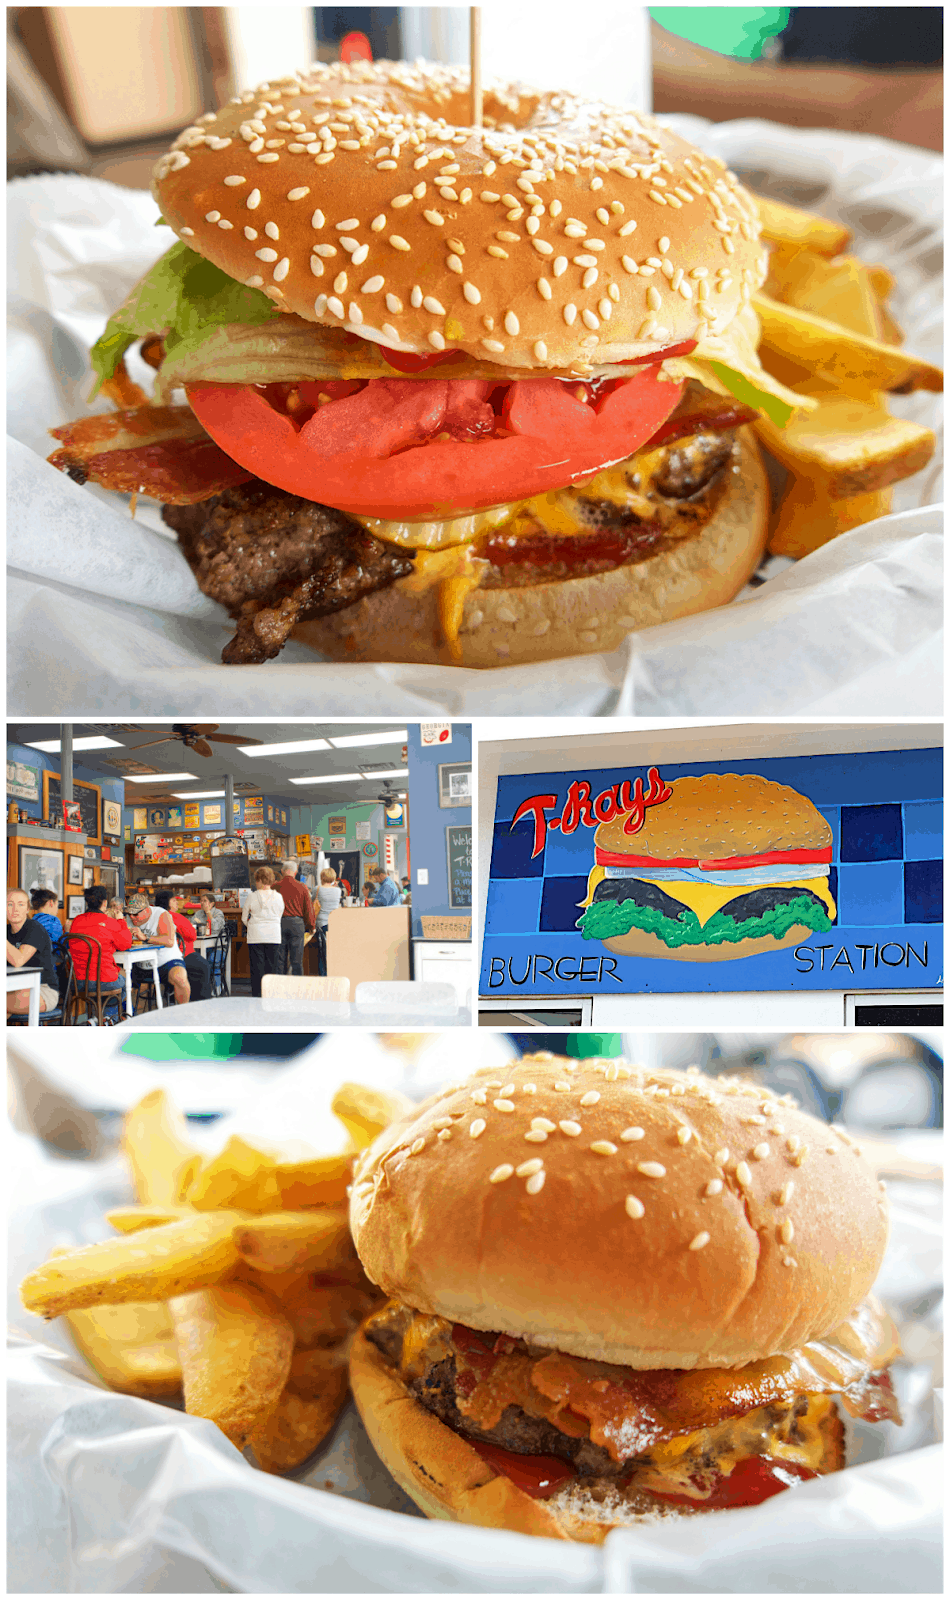 T-Ray's Burger Station in Fernandina Beach - fabulous homemade burgers and fries. Located in an old gas station. Open for breakfast and lunch.